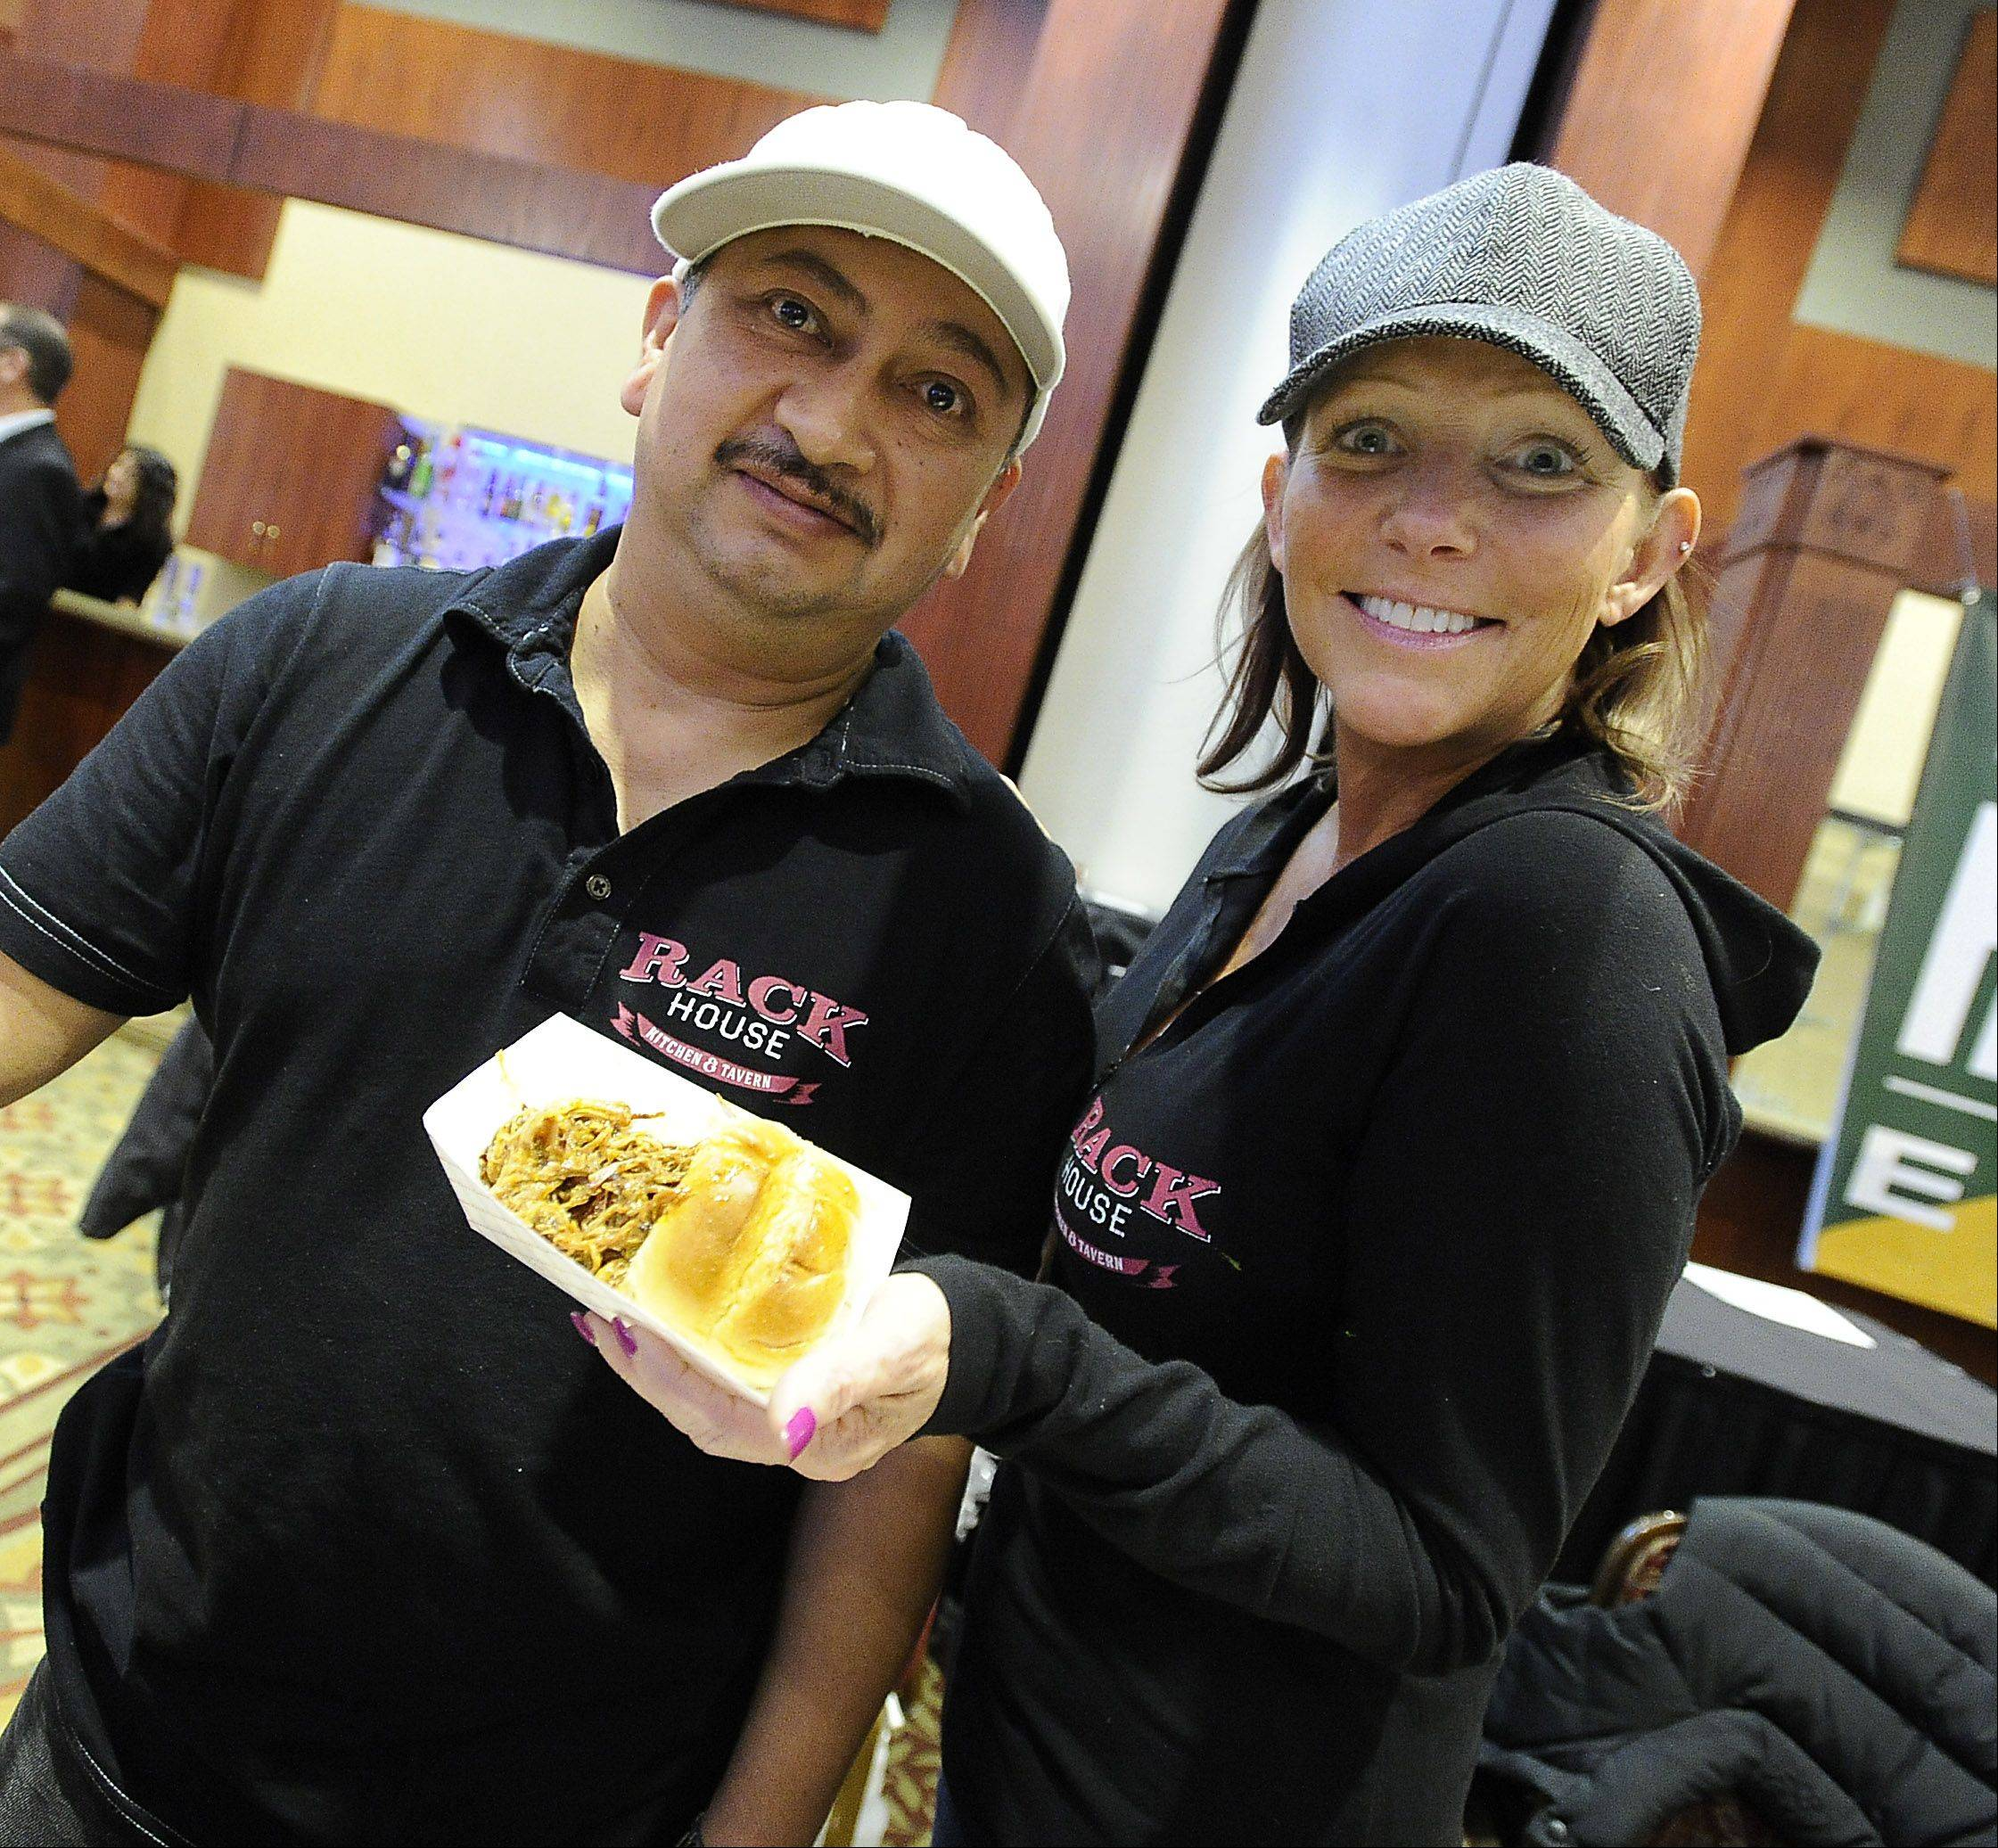 Manager Tracy Hernandez and chef Nicolas Pastrani from the Rack House of Arlington Heights serve up pulled pork Thursday at Northwest Hospitality Expo 2013 at the Meadows Club in Rolling Meadows.